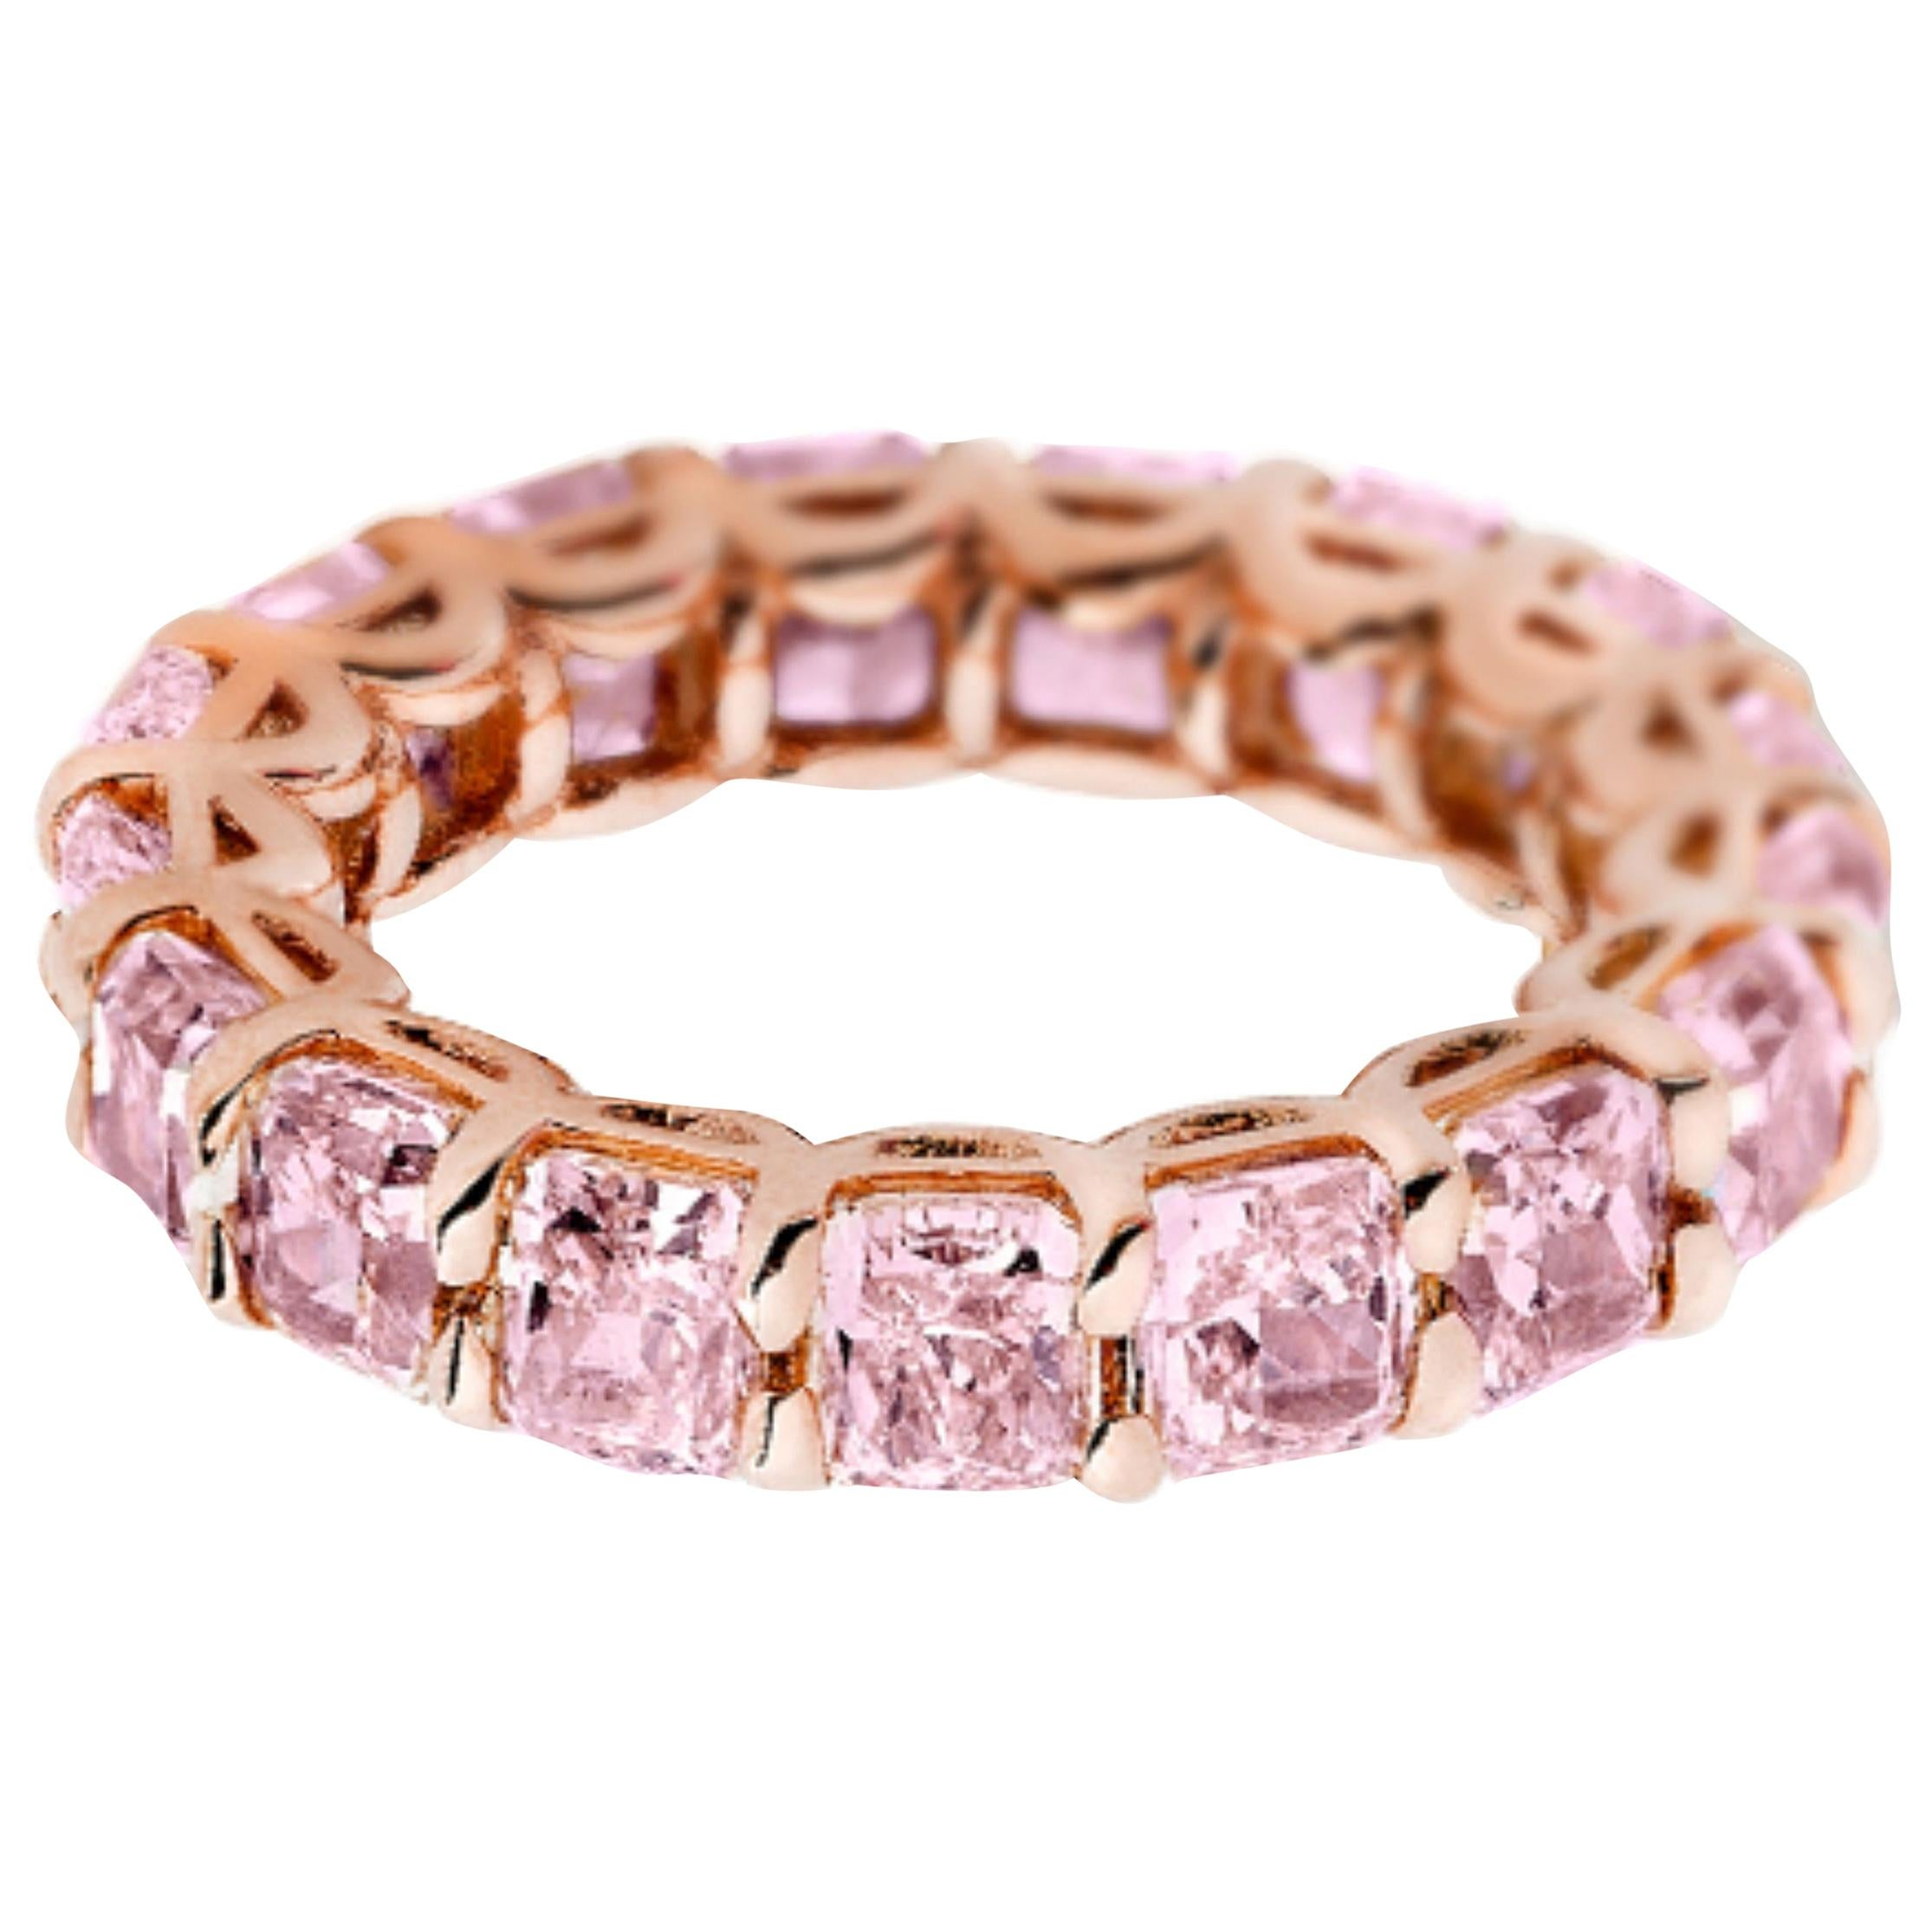 5.20 Carat Radiant Cut Pink Diamond Eternity Band Ring, GIA Certified